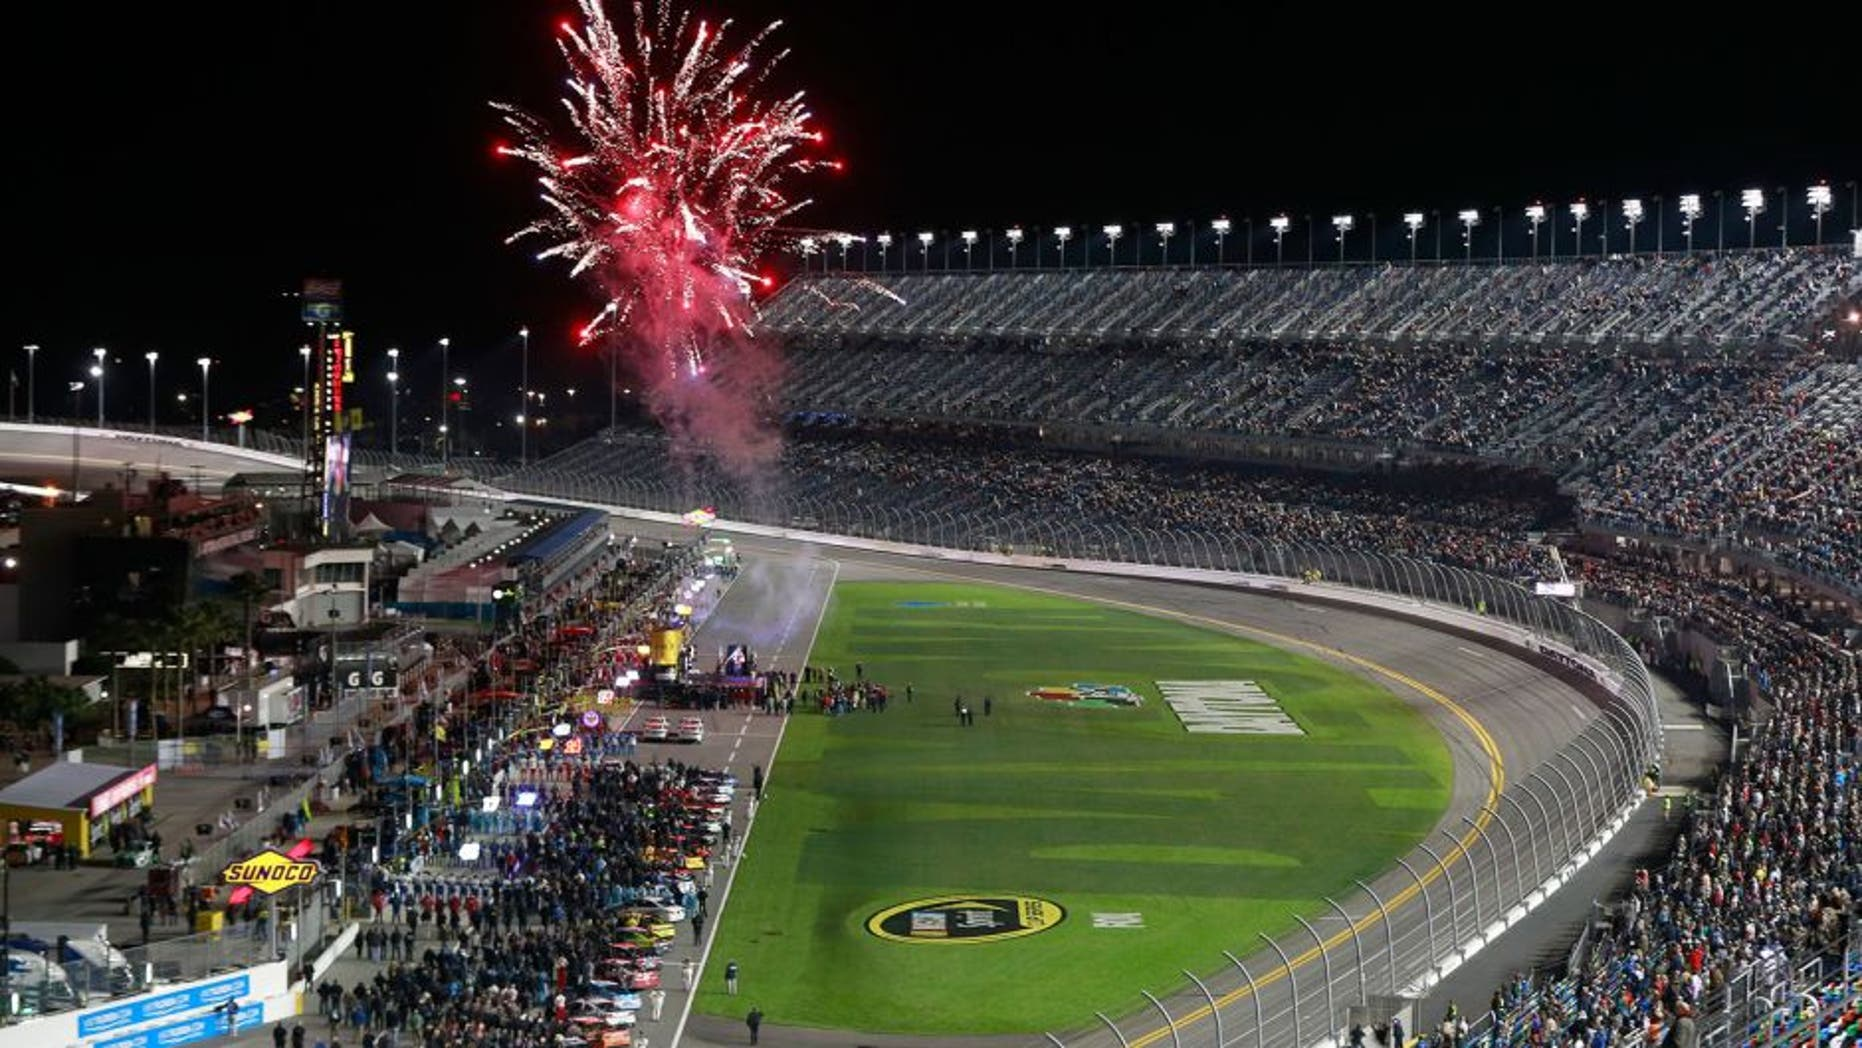 DAYTONA BEACH, FL - FEBRUARY 13: A general view of the speedway while drivers are introduced prior the NASCAR Sprint Cup Series Sprint Unlimited at Daytona International Speedway on February 13, 2016 in Daytona Beach, Florida. (Photo by Matt Sullivan/Getty Images)